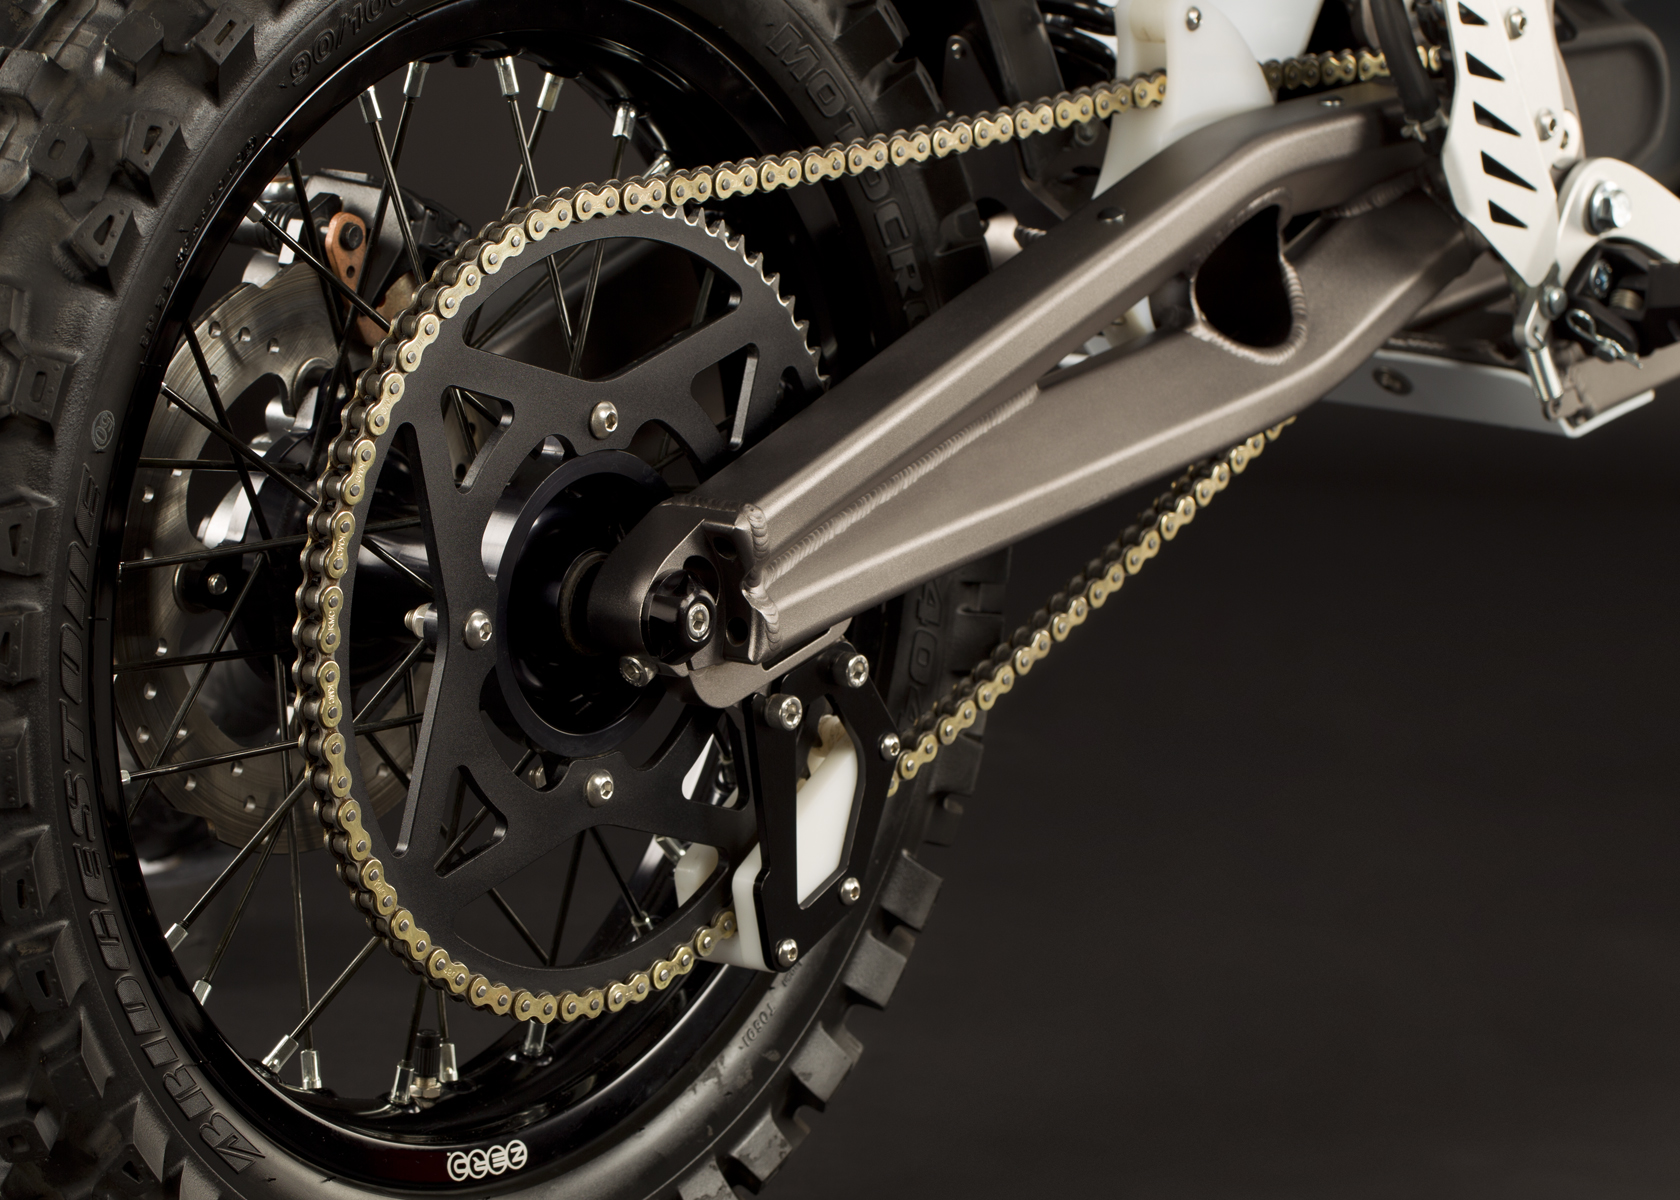 2011 Zero X Electric Motorcycle: Rear tire / Rear shock / Swingarm